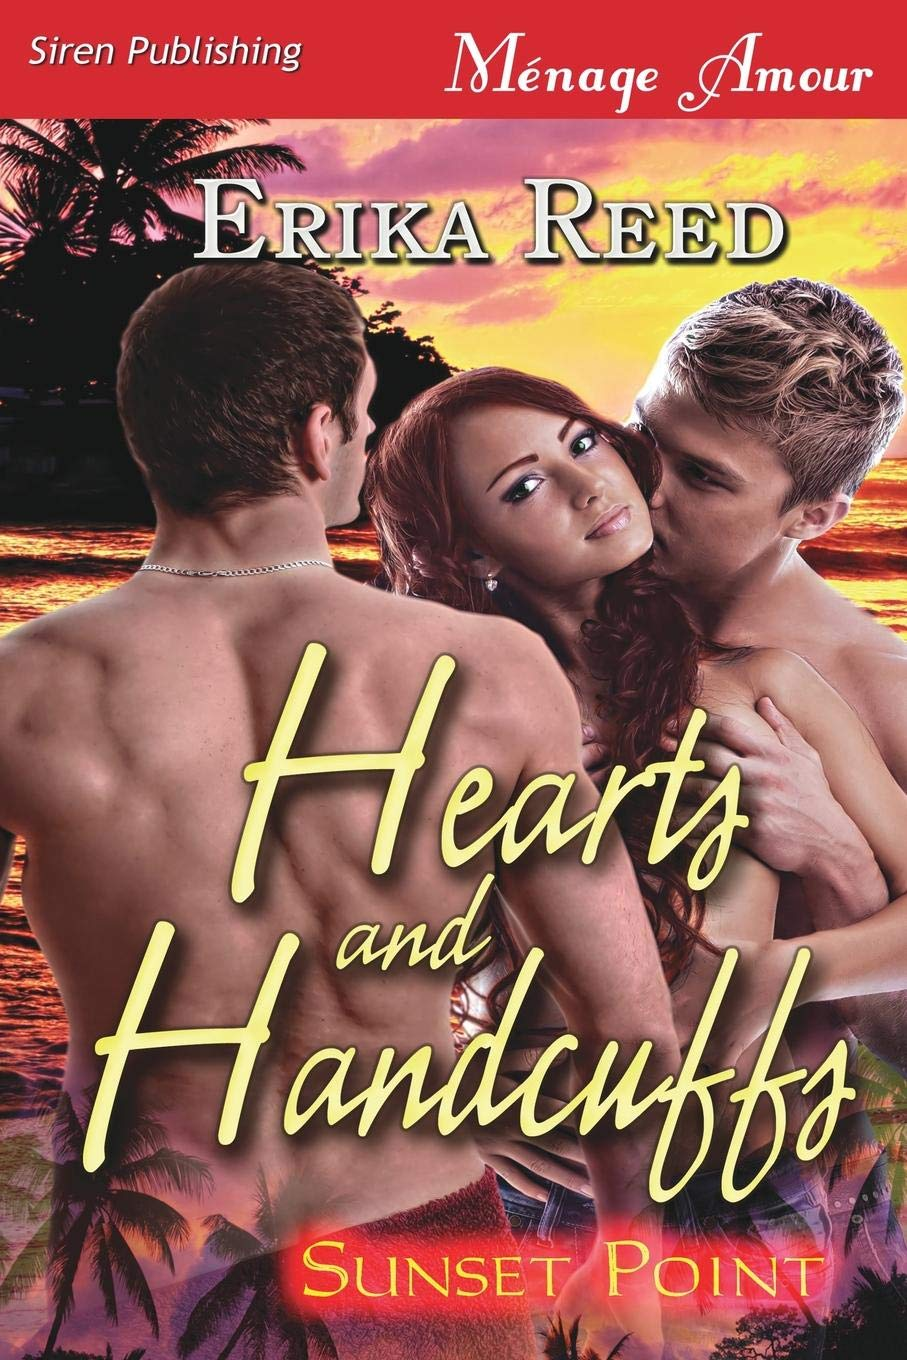 Read Online Hearts and Handcuffs [Sunset Point] (Siren Publishing Menage Amour) PDF